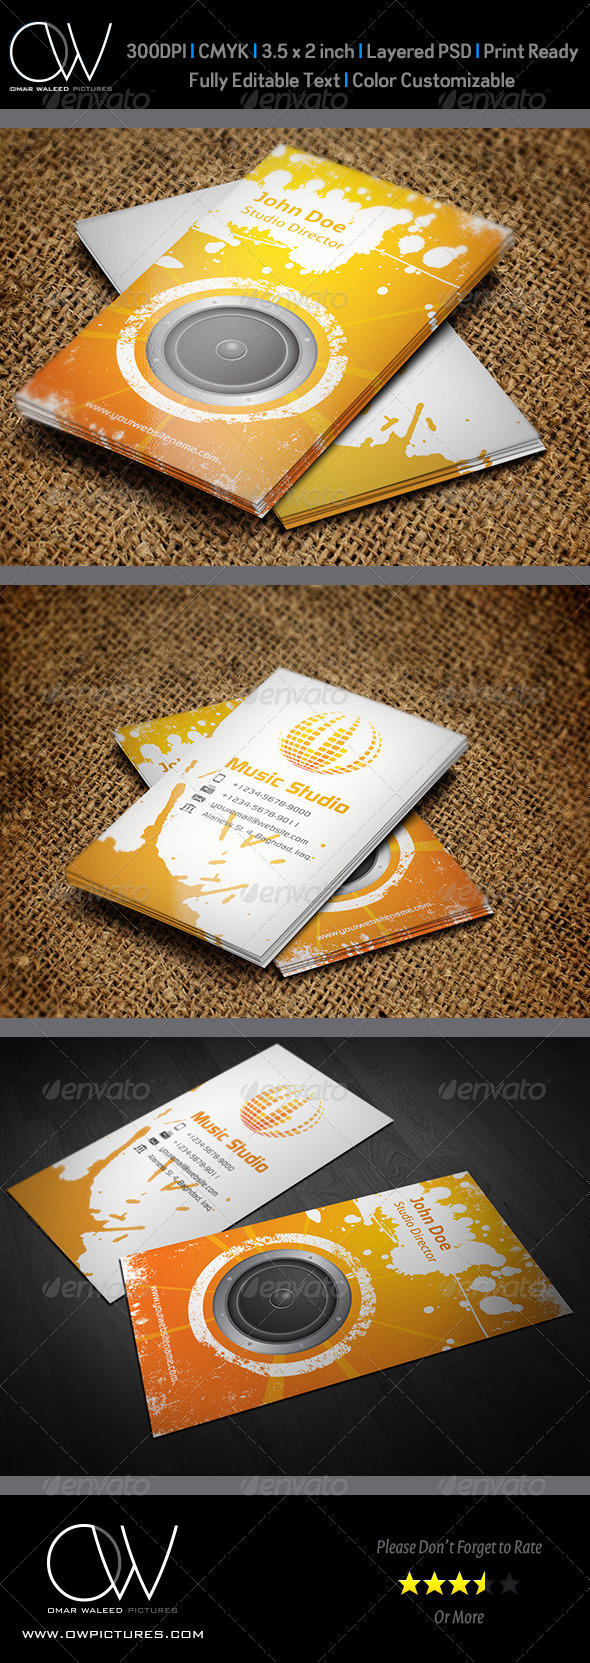 Music Studio Business Card Vol.2